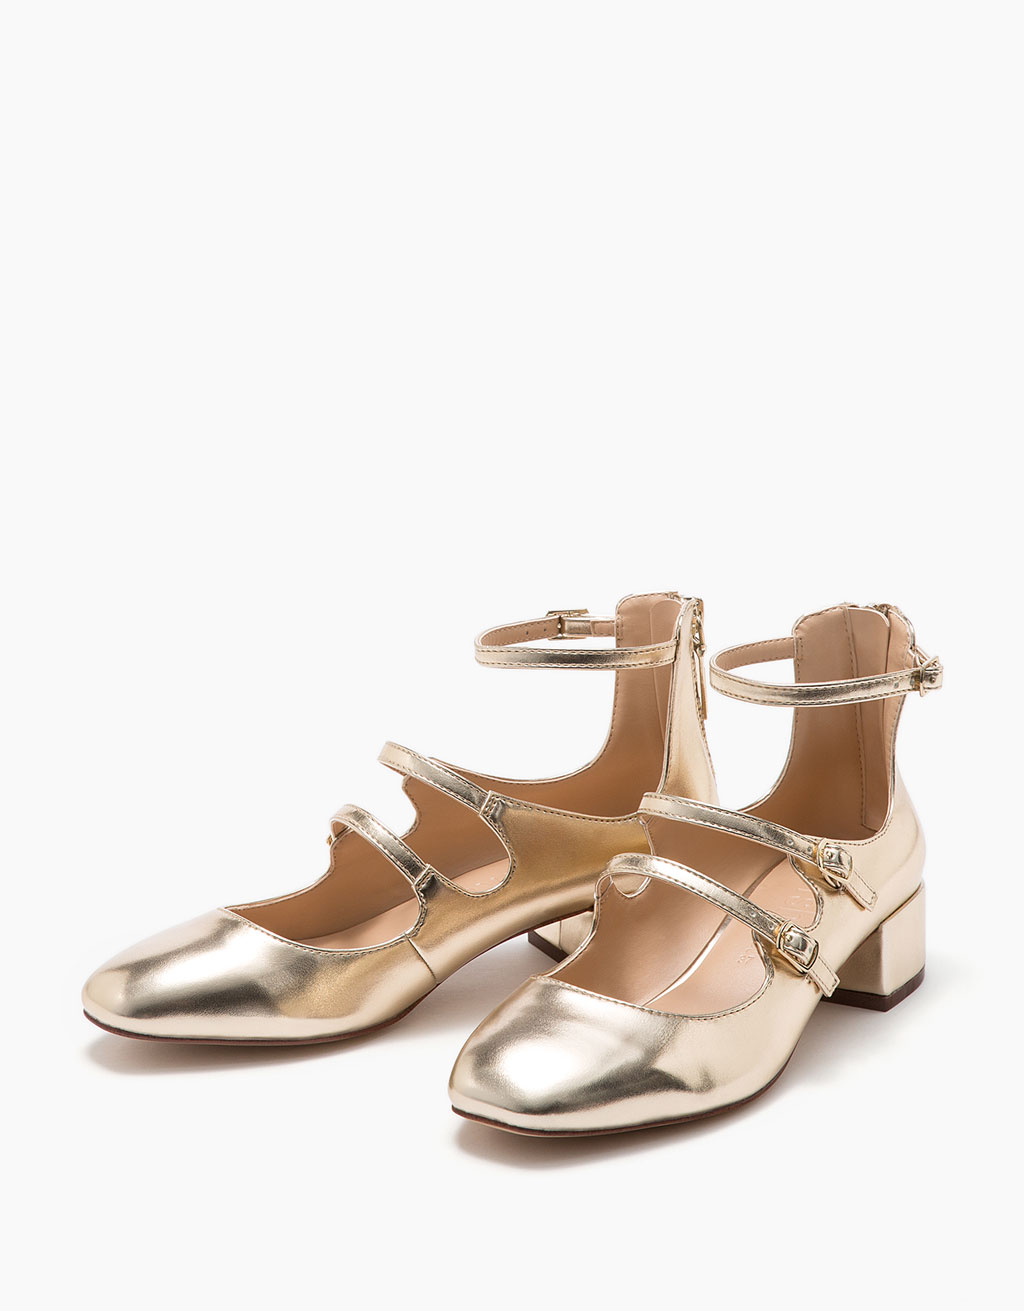 Heeled ballerina shoes with shiny metallic straps